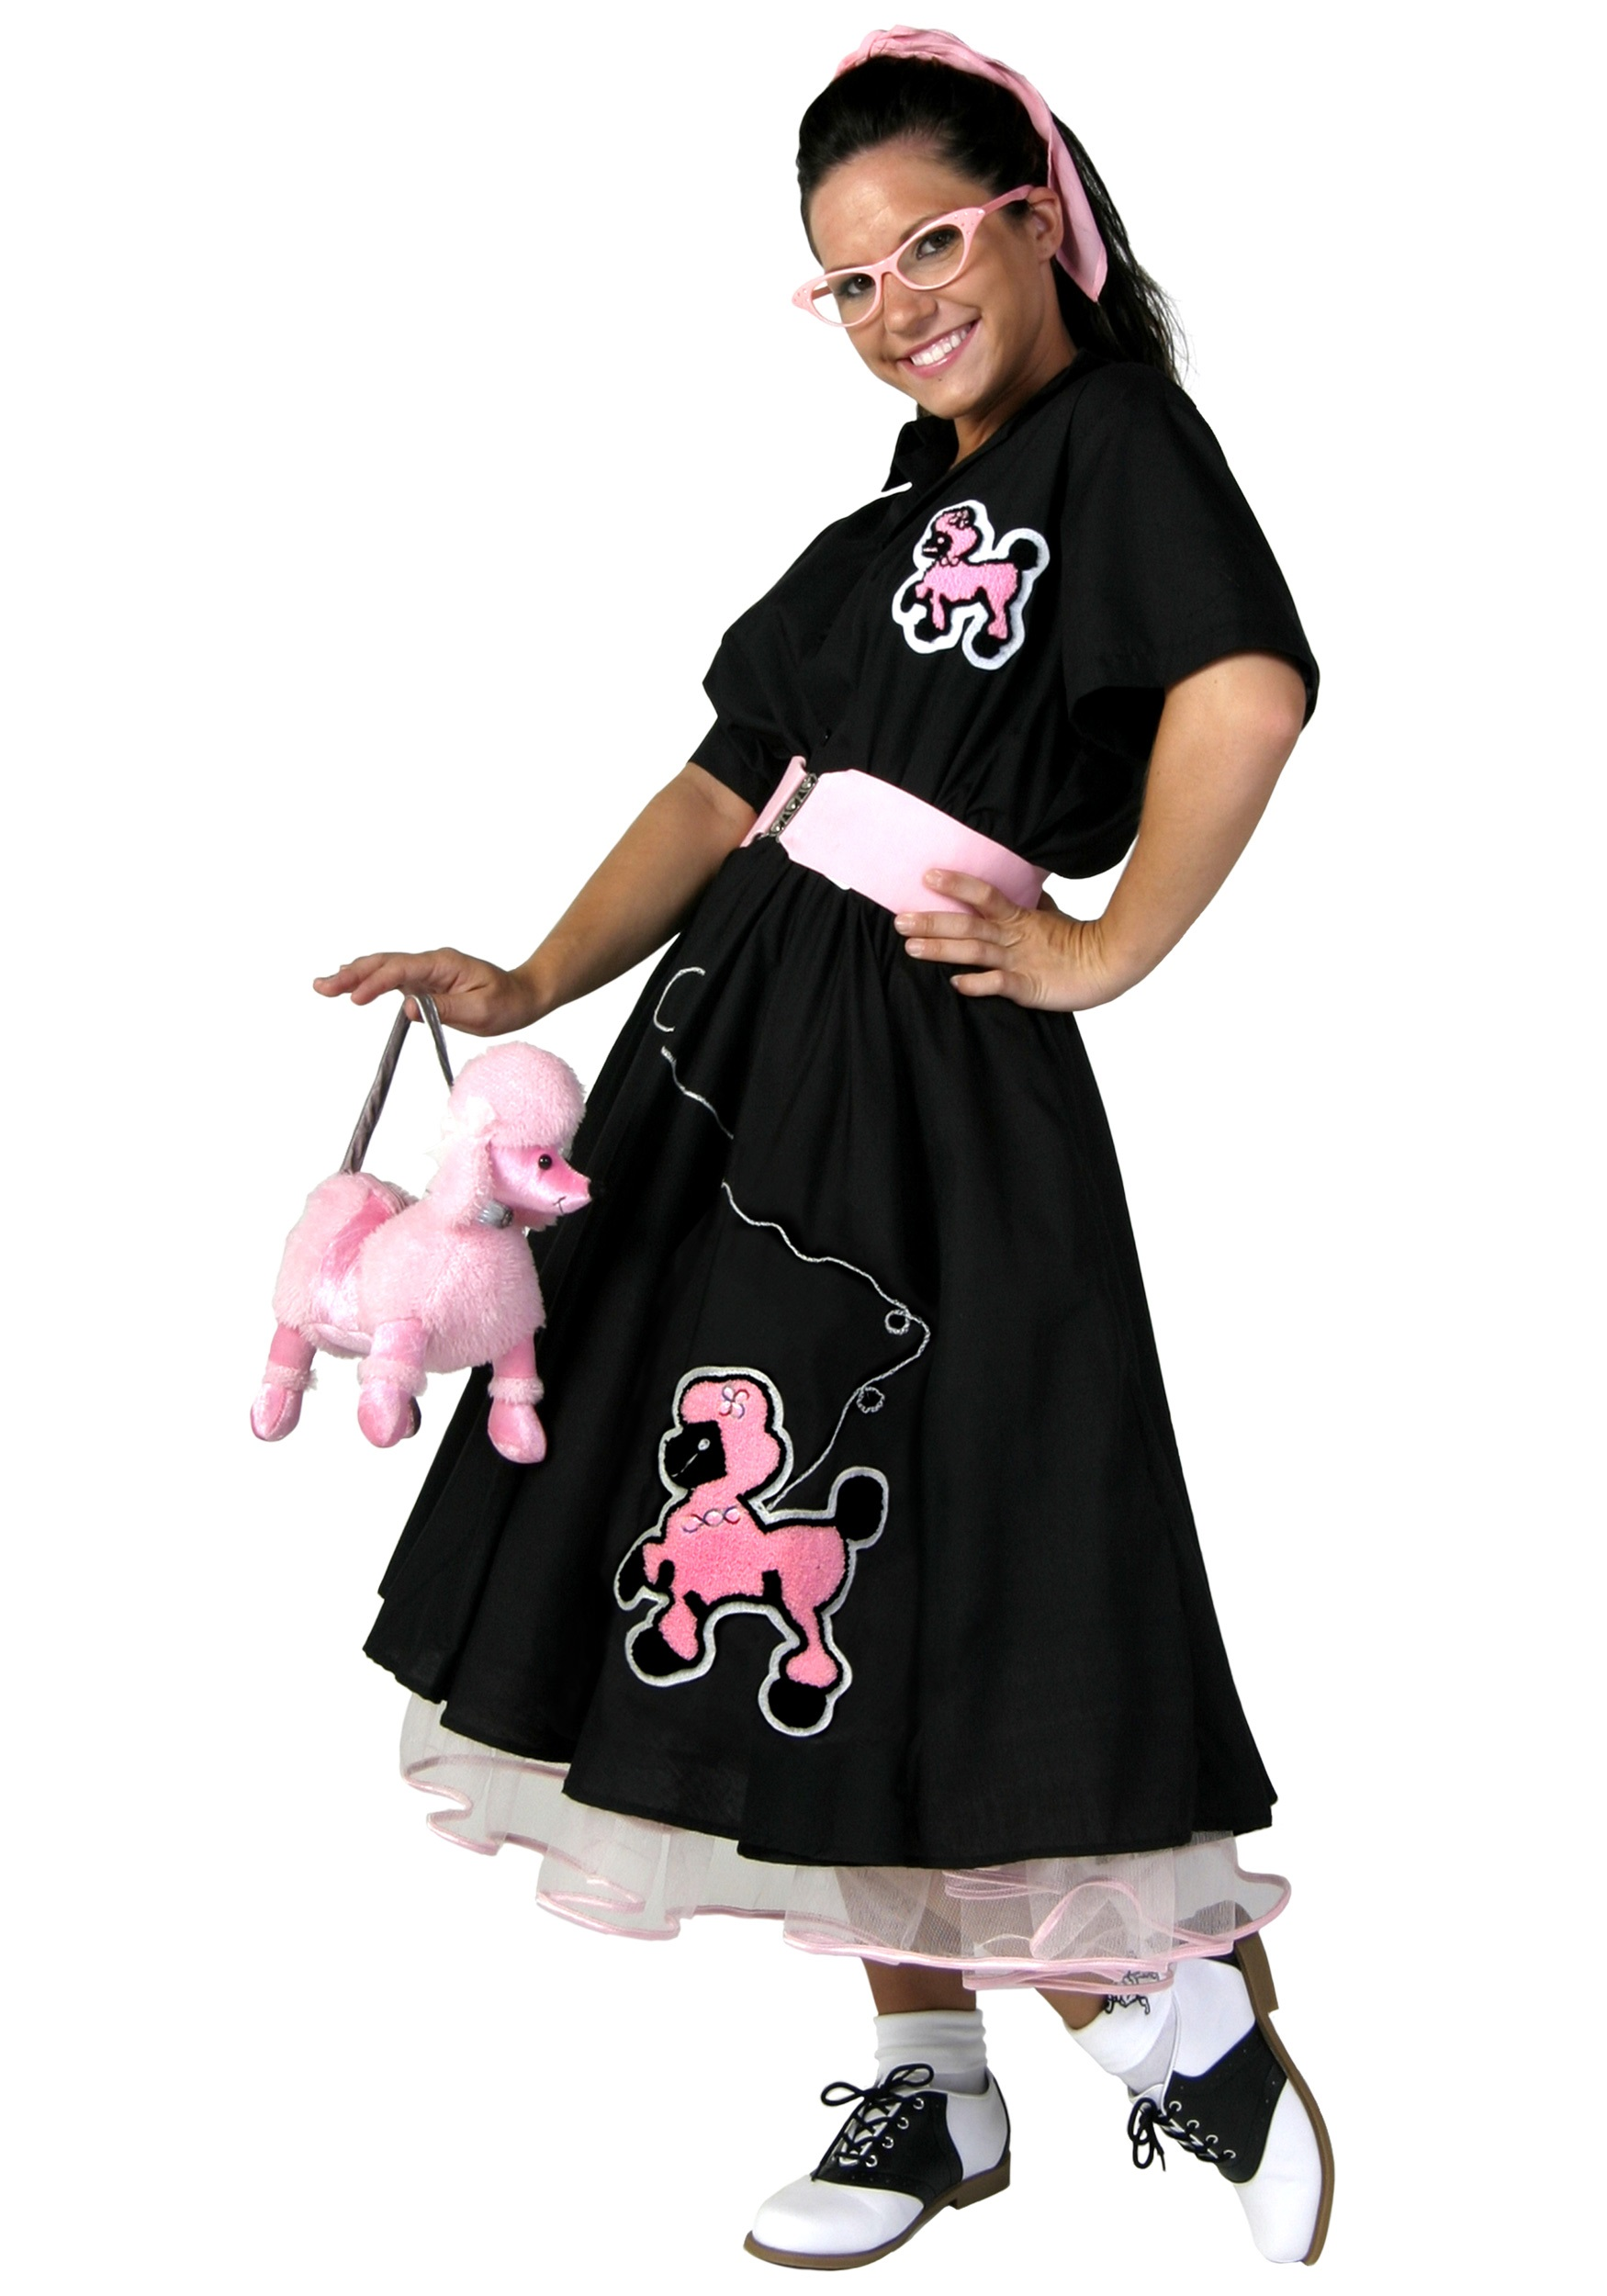 Adult Deluxe Poodle Skirt Costume  sc 1 st  Halloween Costumes & Adult Deluxe Poodle Skirt Costume - Halloween Costumes